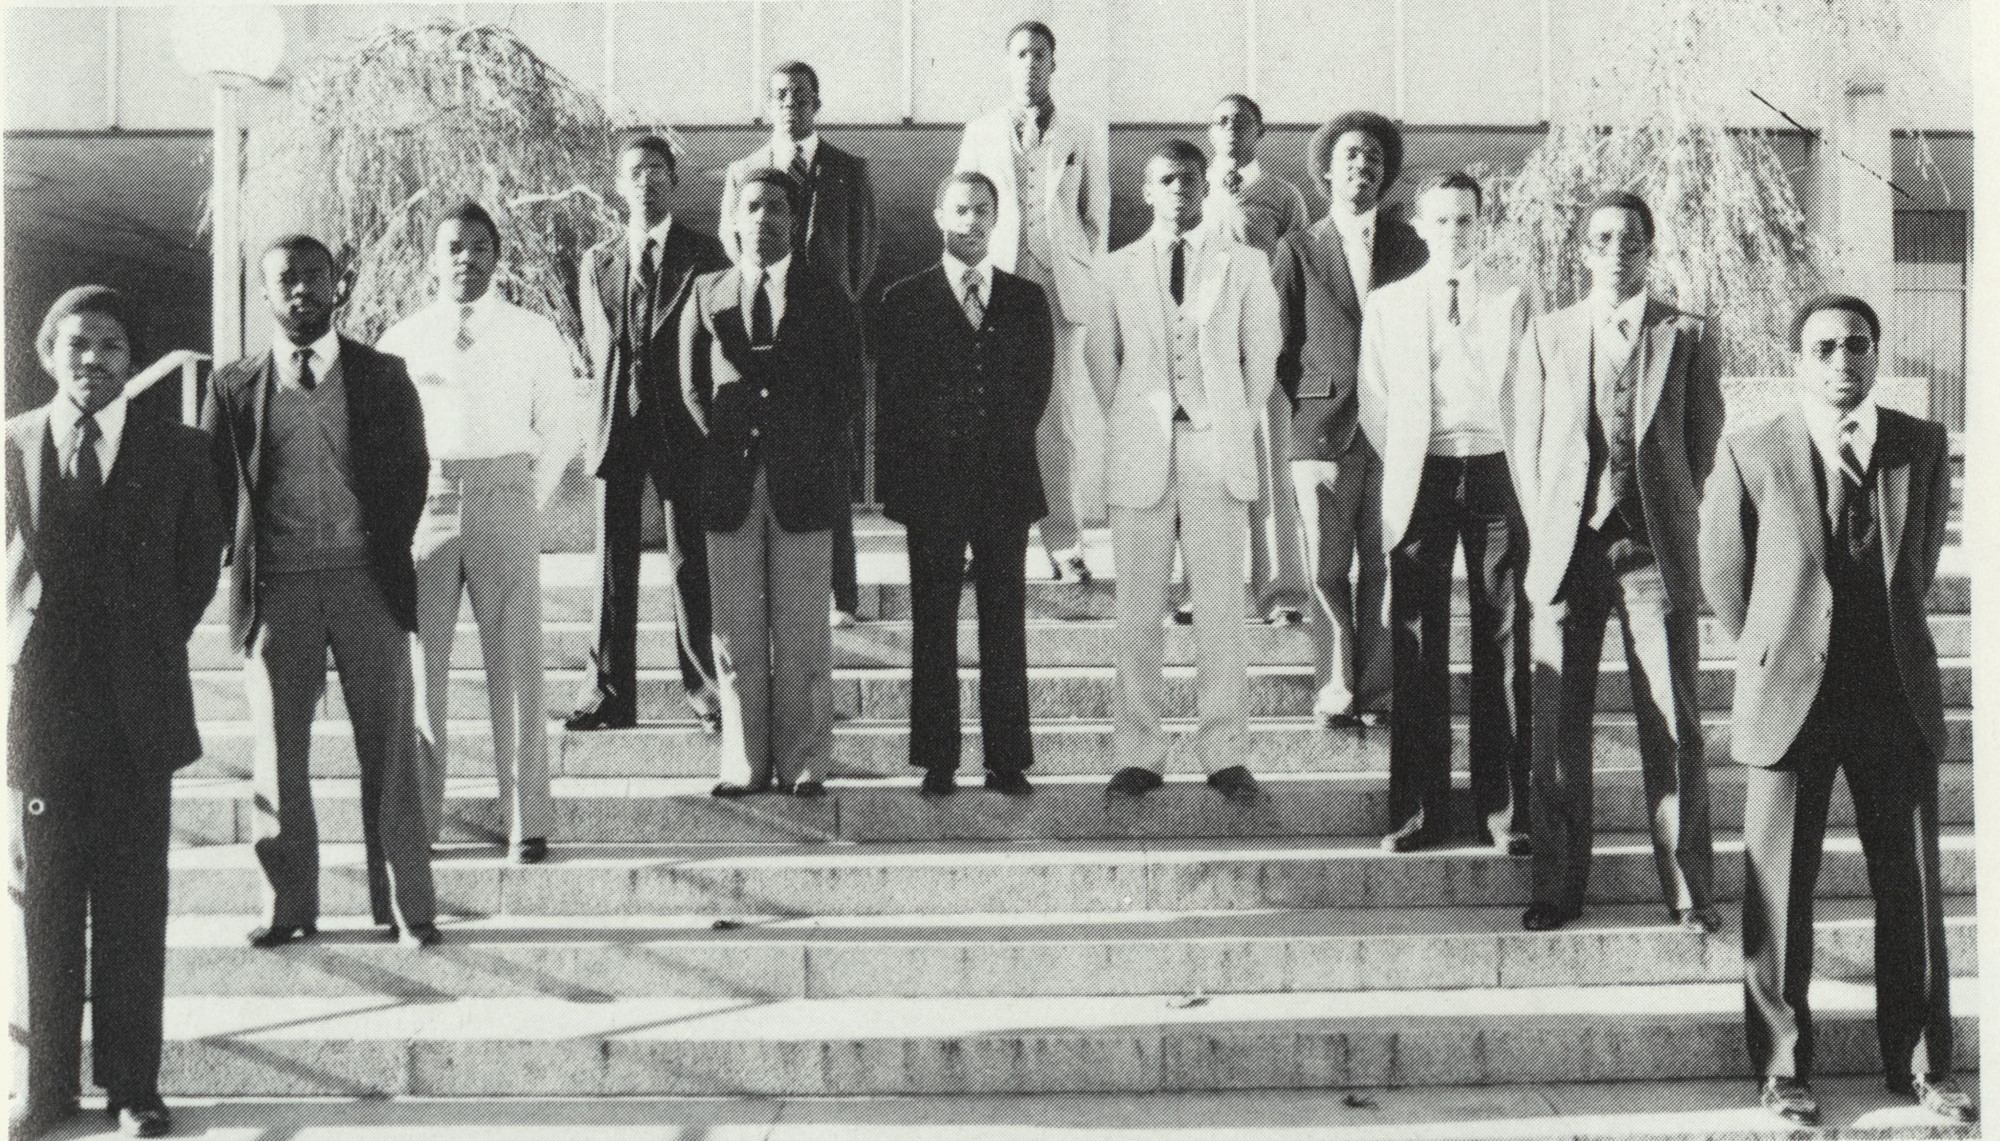 http://spec.lib.vt.edu/pickup/Omeka_upload/AlphaPhiAlpha_1982.jpg